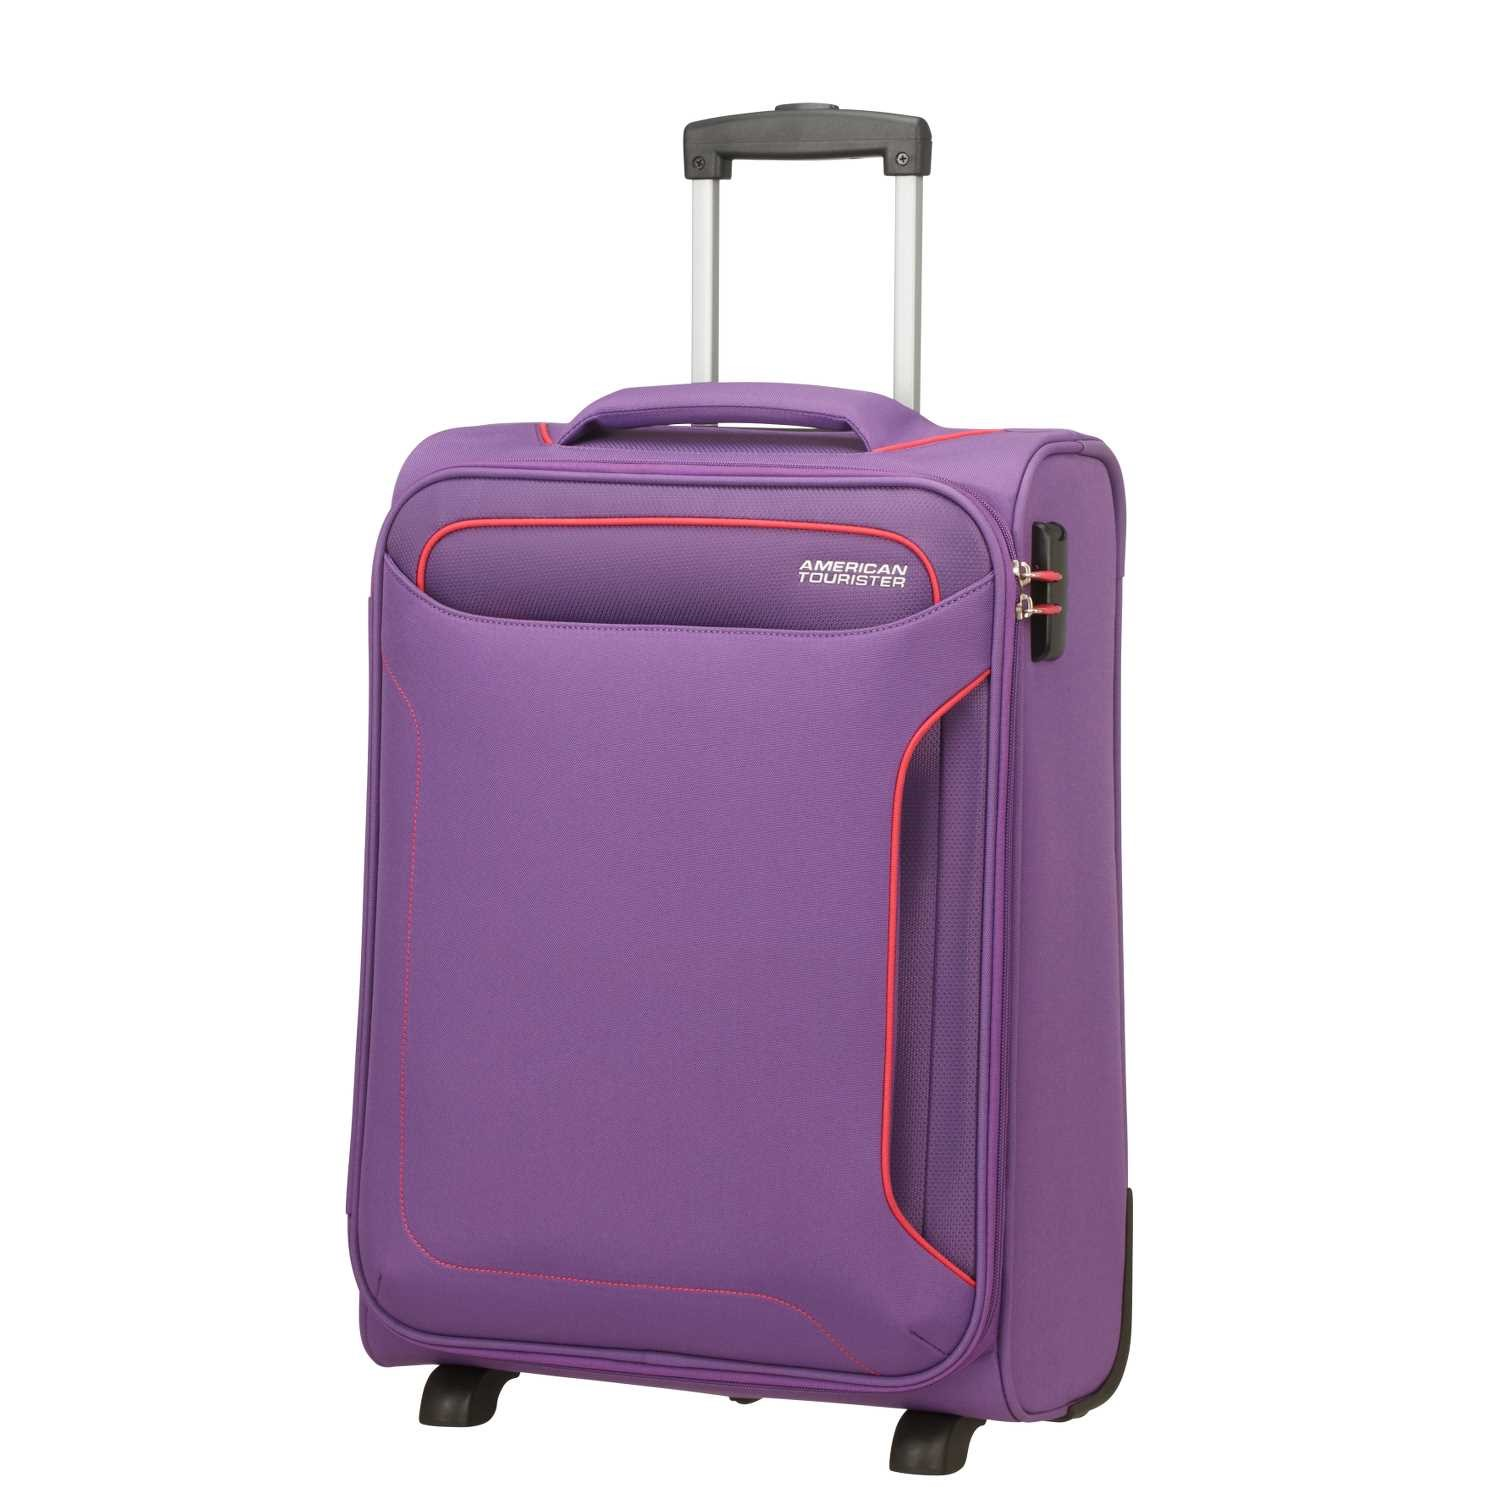 AMERICAN TOURISTER - Βαλίτσα καμπίνας HOLIDAY HEAT UPRIGHT 55 20 ... c376a36fc27